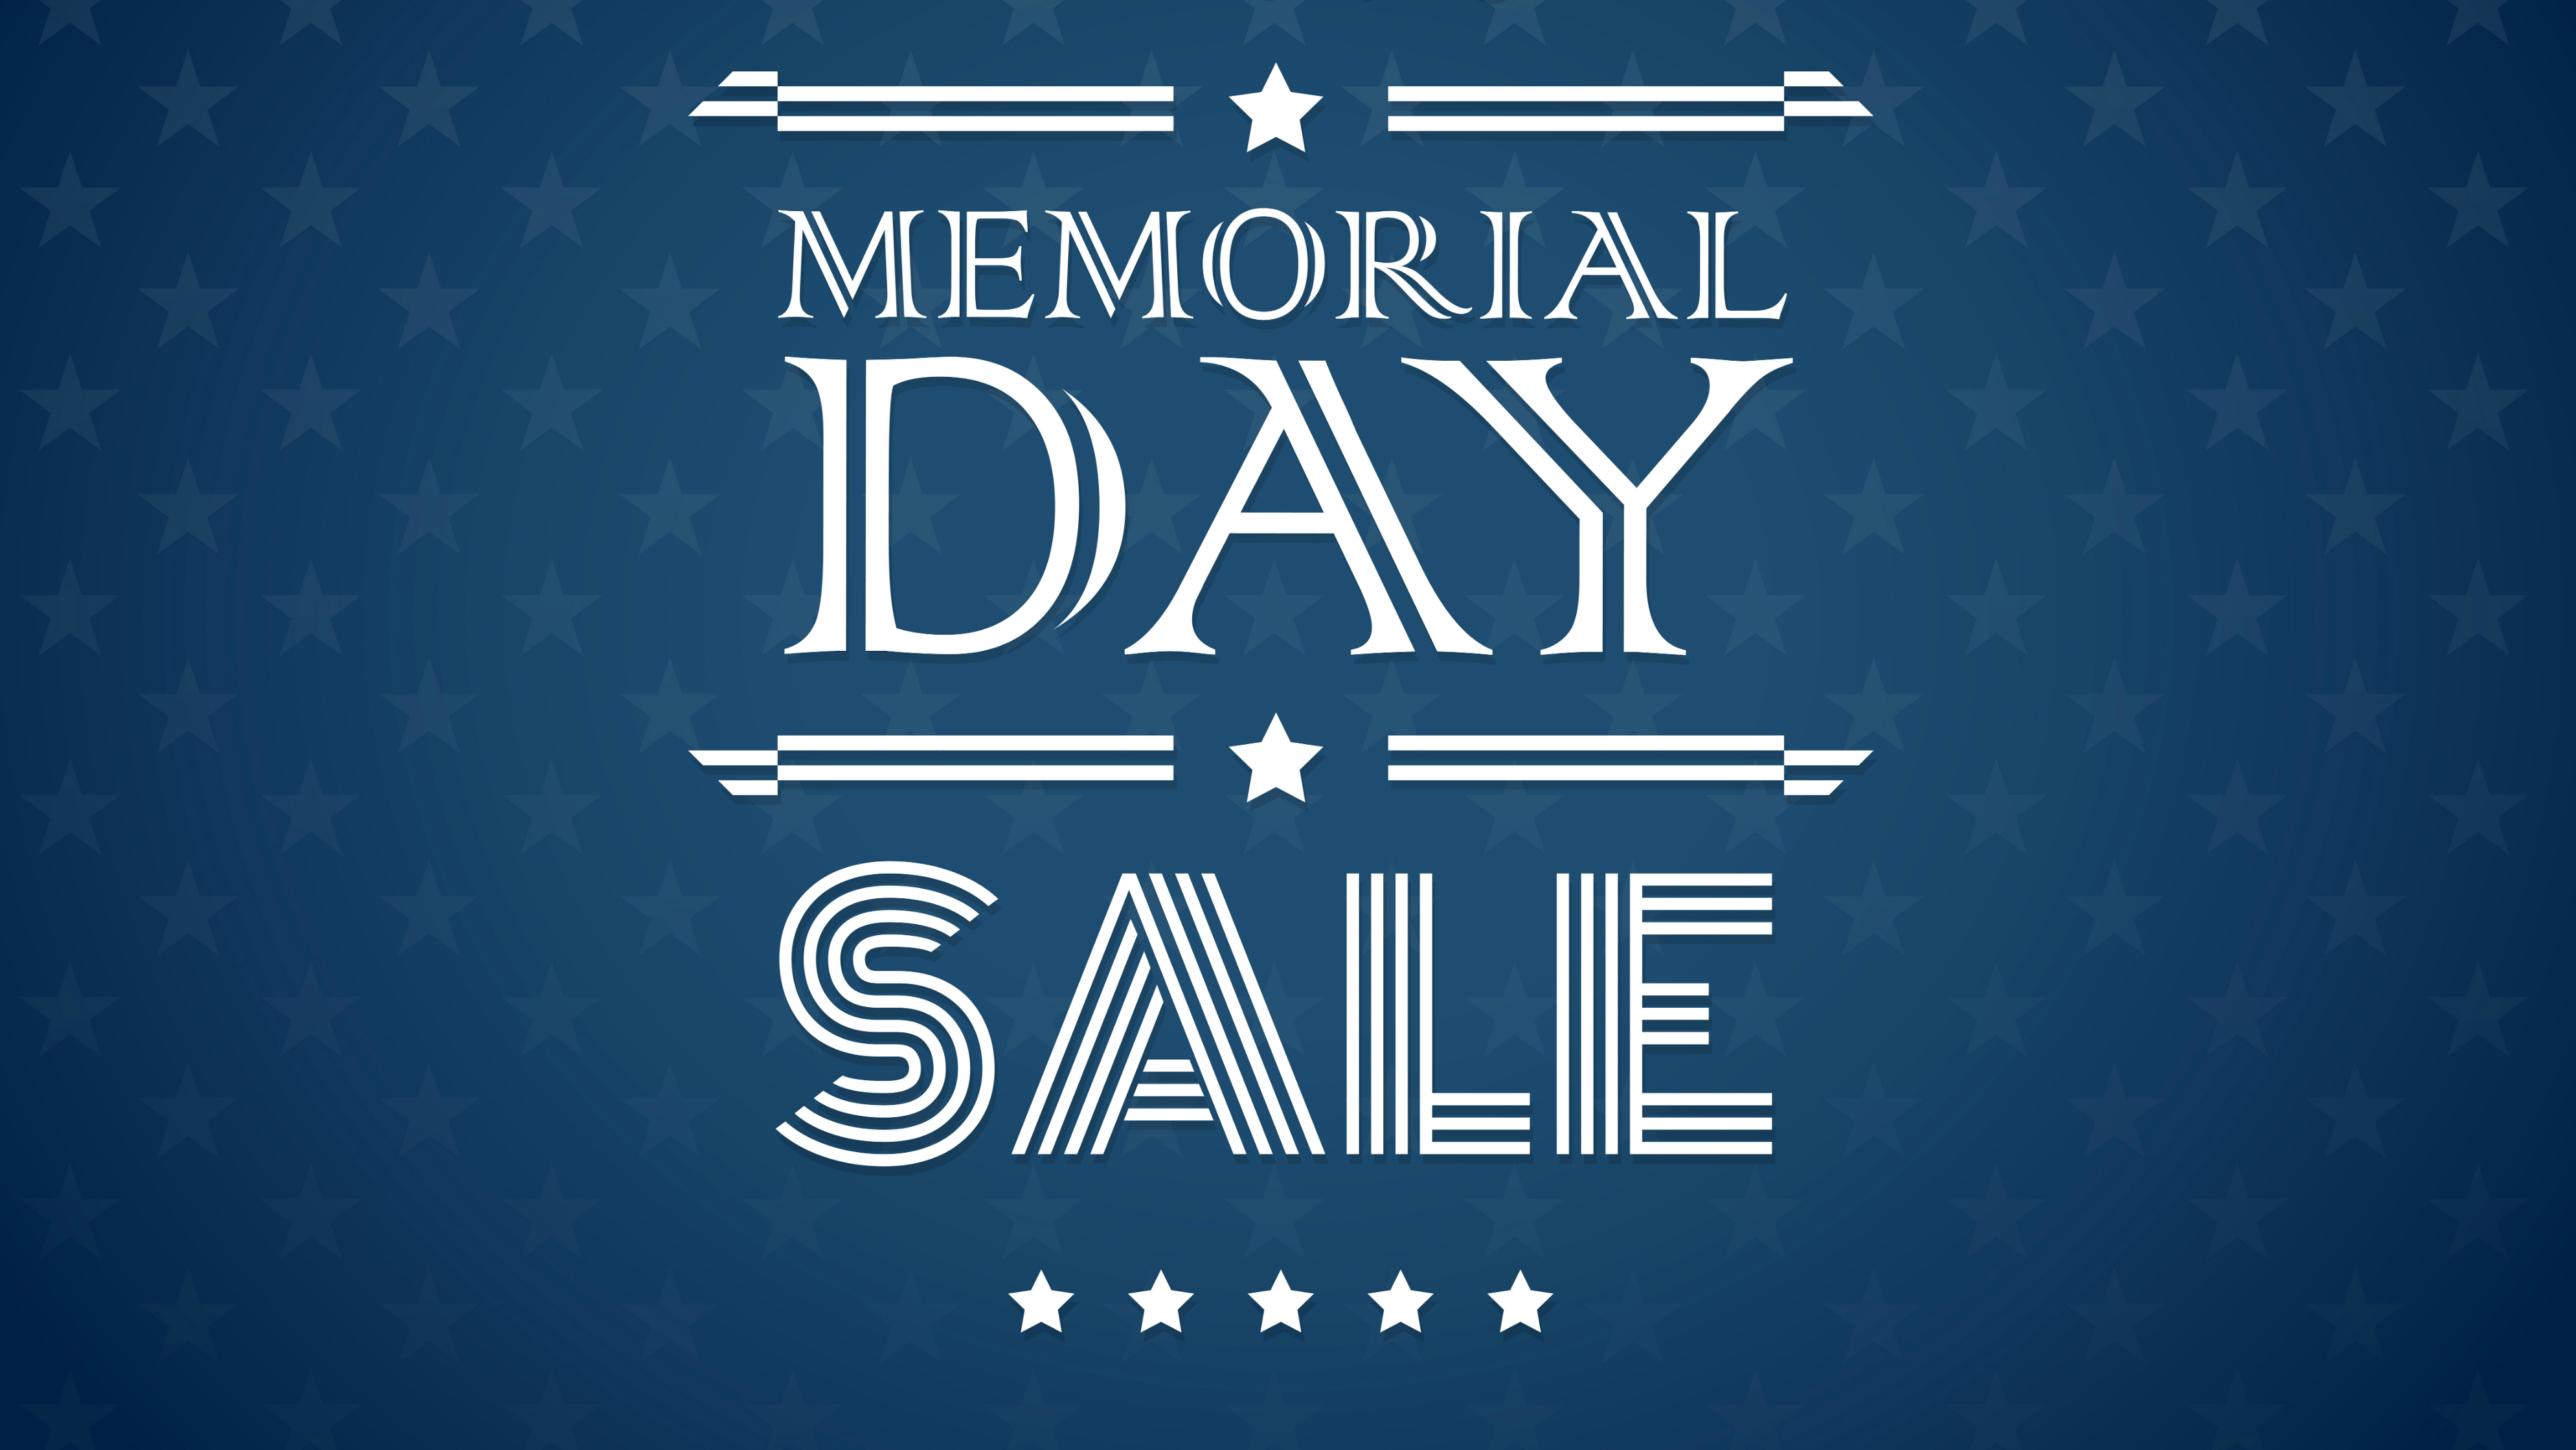 Memorial Day 2019 sale offer discount